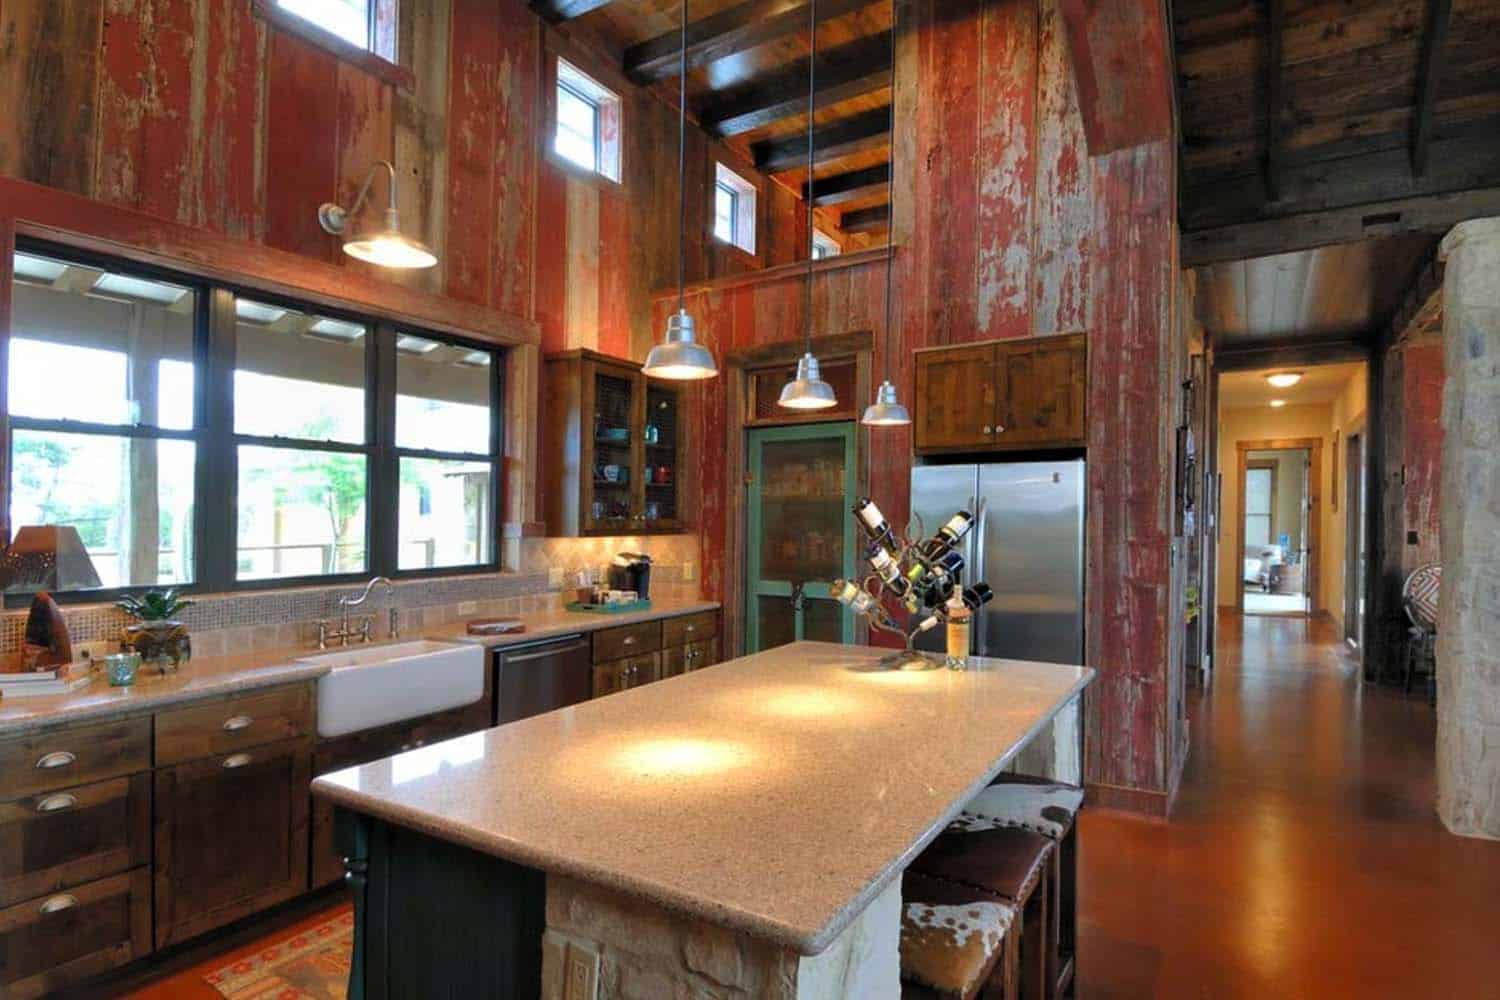 ranch style kitchen designs. Ranch House Barn Burleson Design Group 08 1 Kindesign Rustic Ranch House Designed For Family Gatherings In Texas